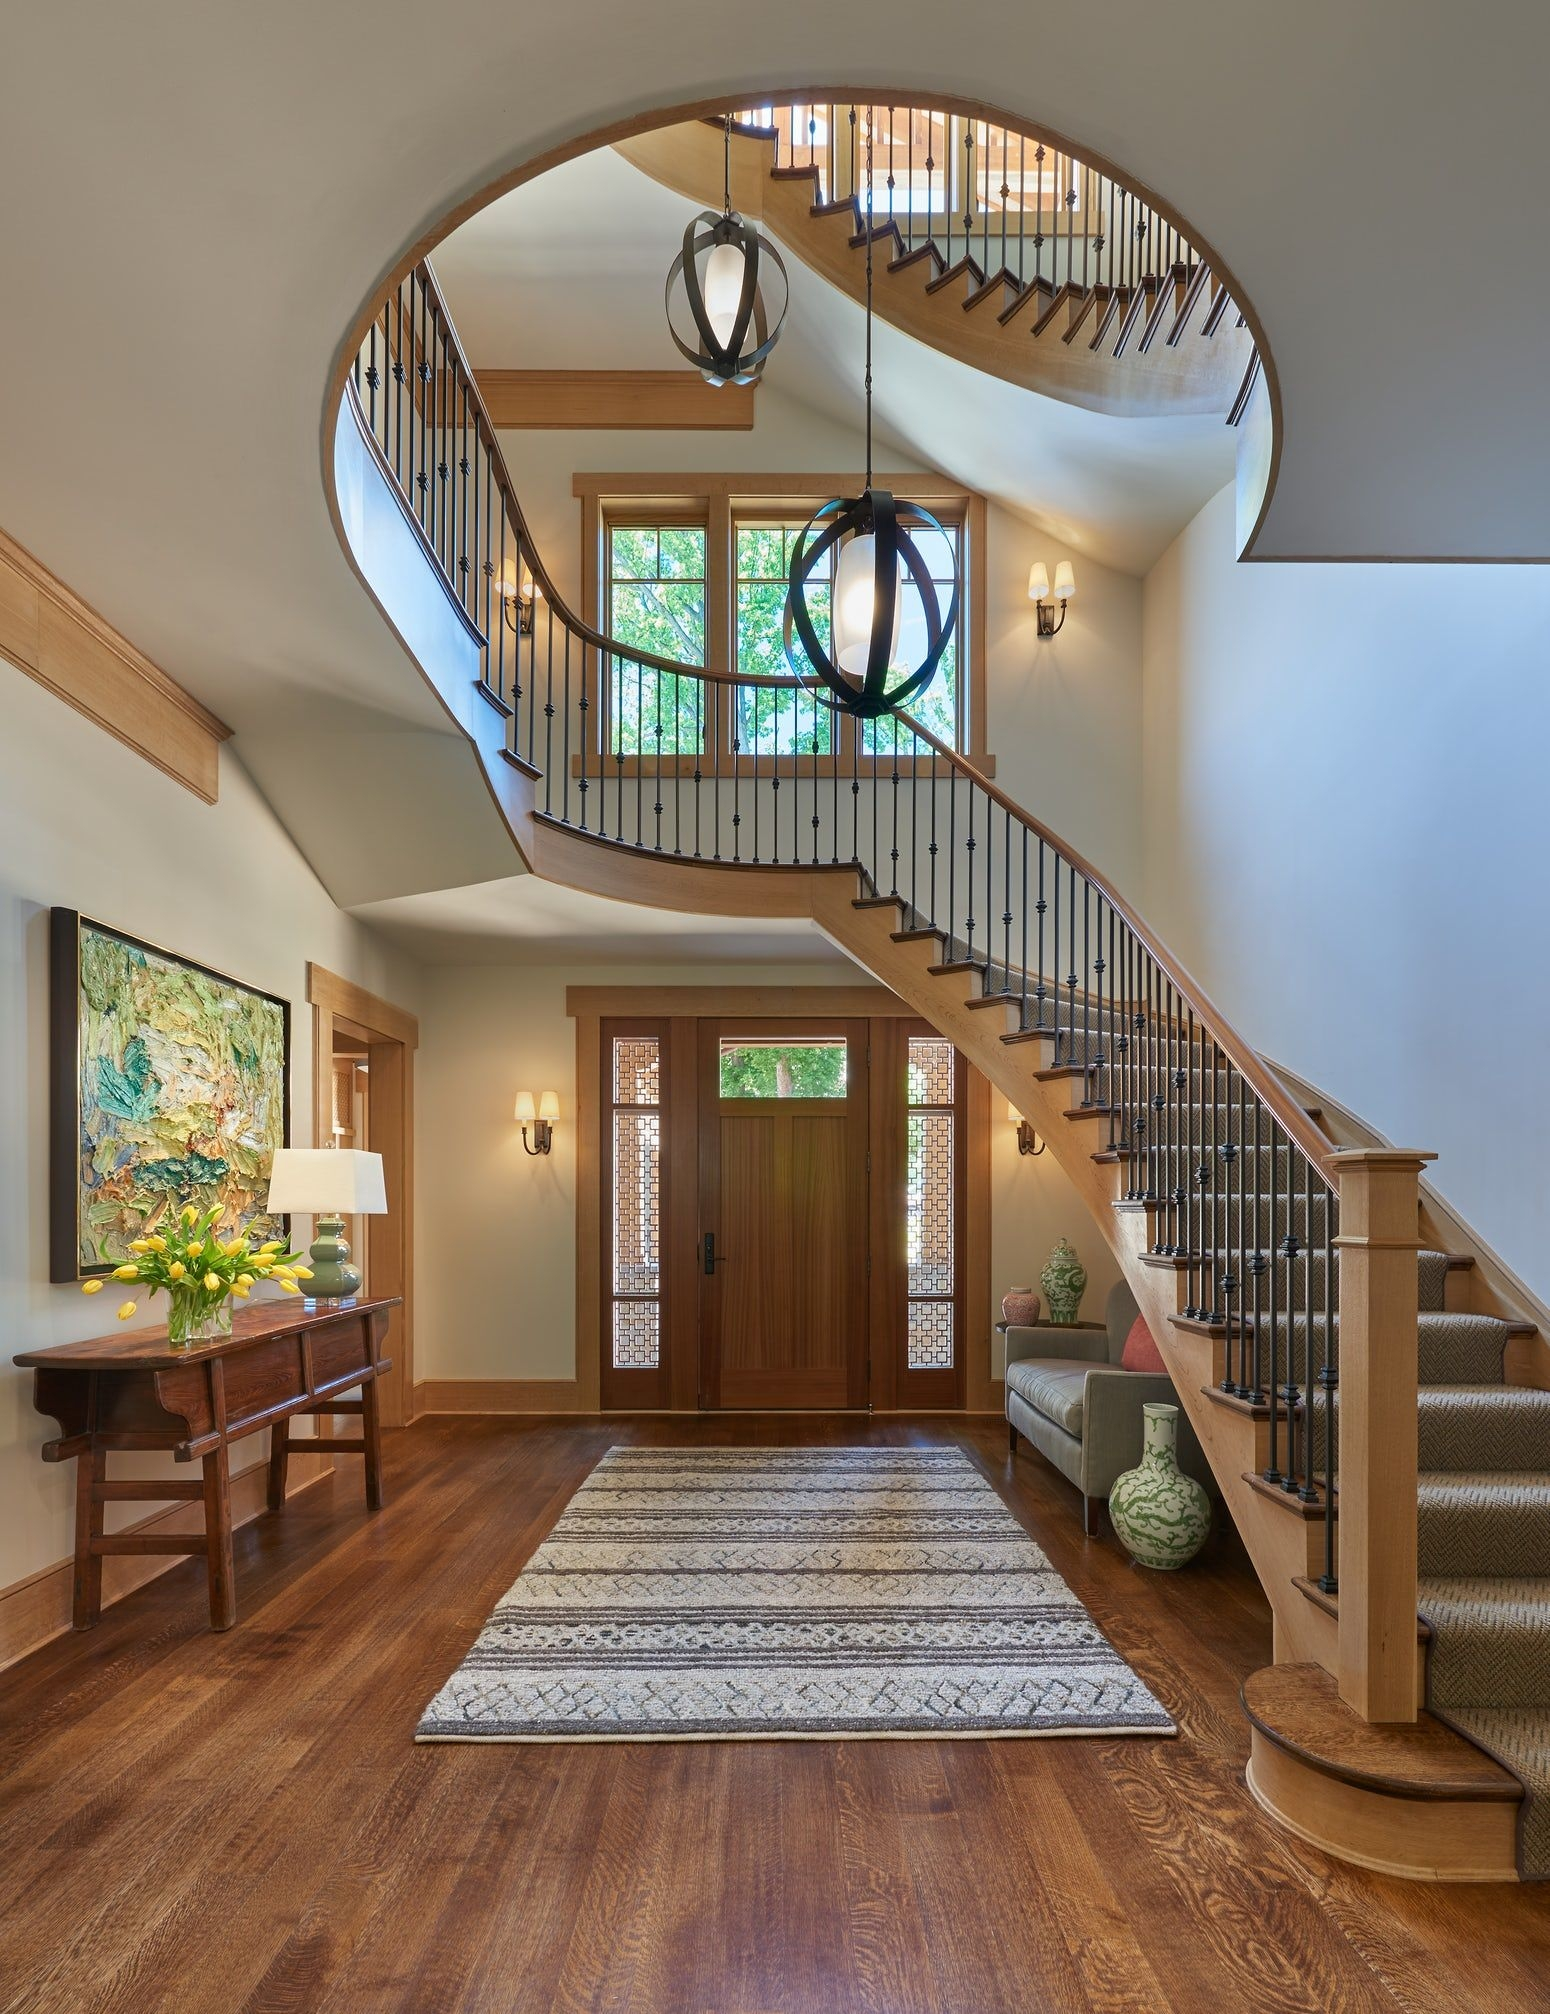 25 Stunning Carpeted Staircase Ideas Most Beautiful Staircase | Designer Carpet For Stairs | Stair Railing | Victorian | Flower Design | Treads | American Style